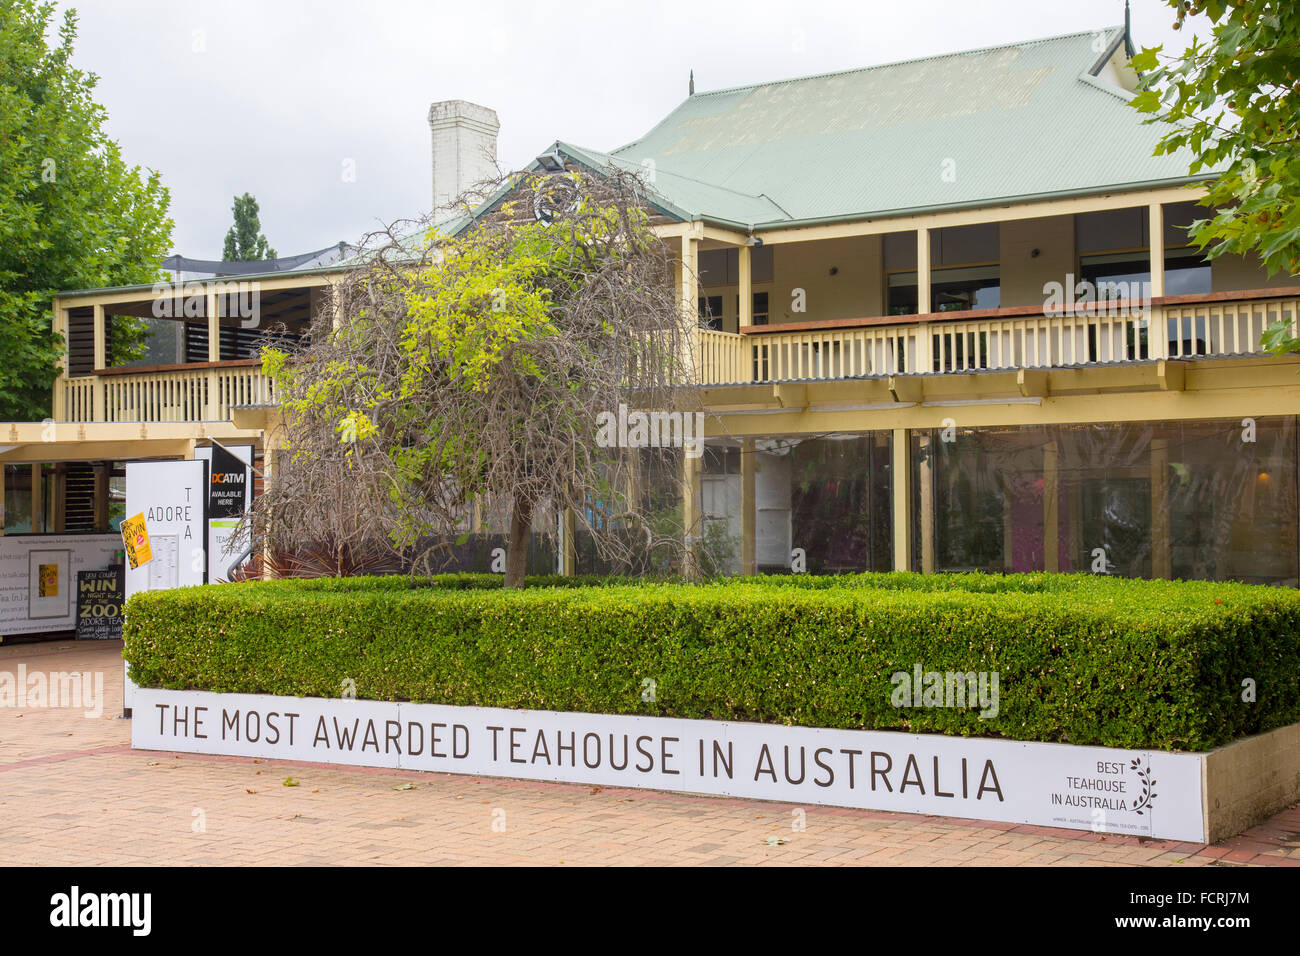 Adore Teahouse in Nicholls,ACT,Australia with sign the most awarded teahouse in australia - Stock Image